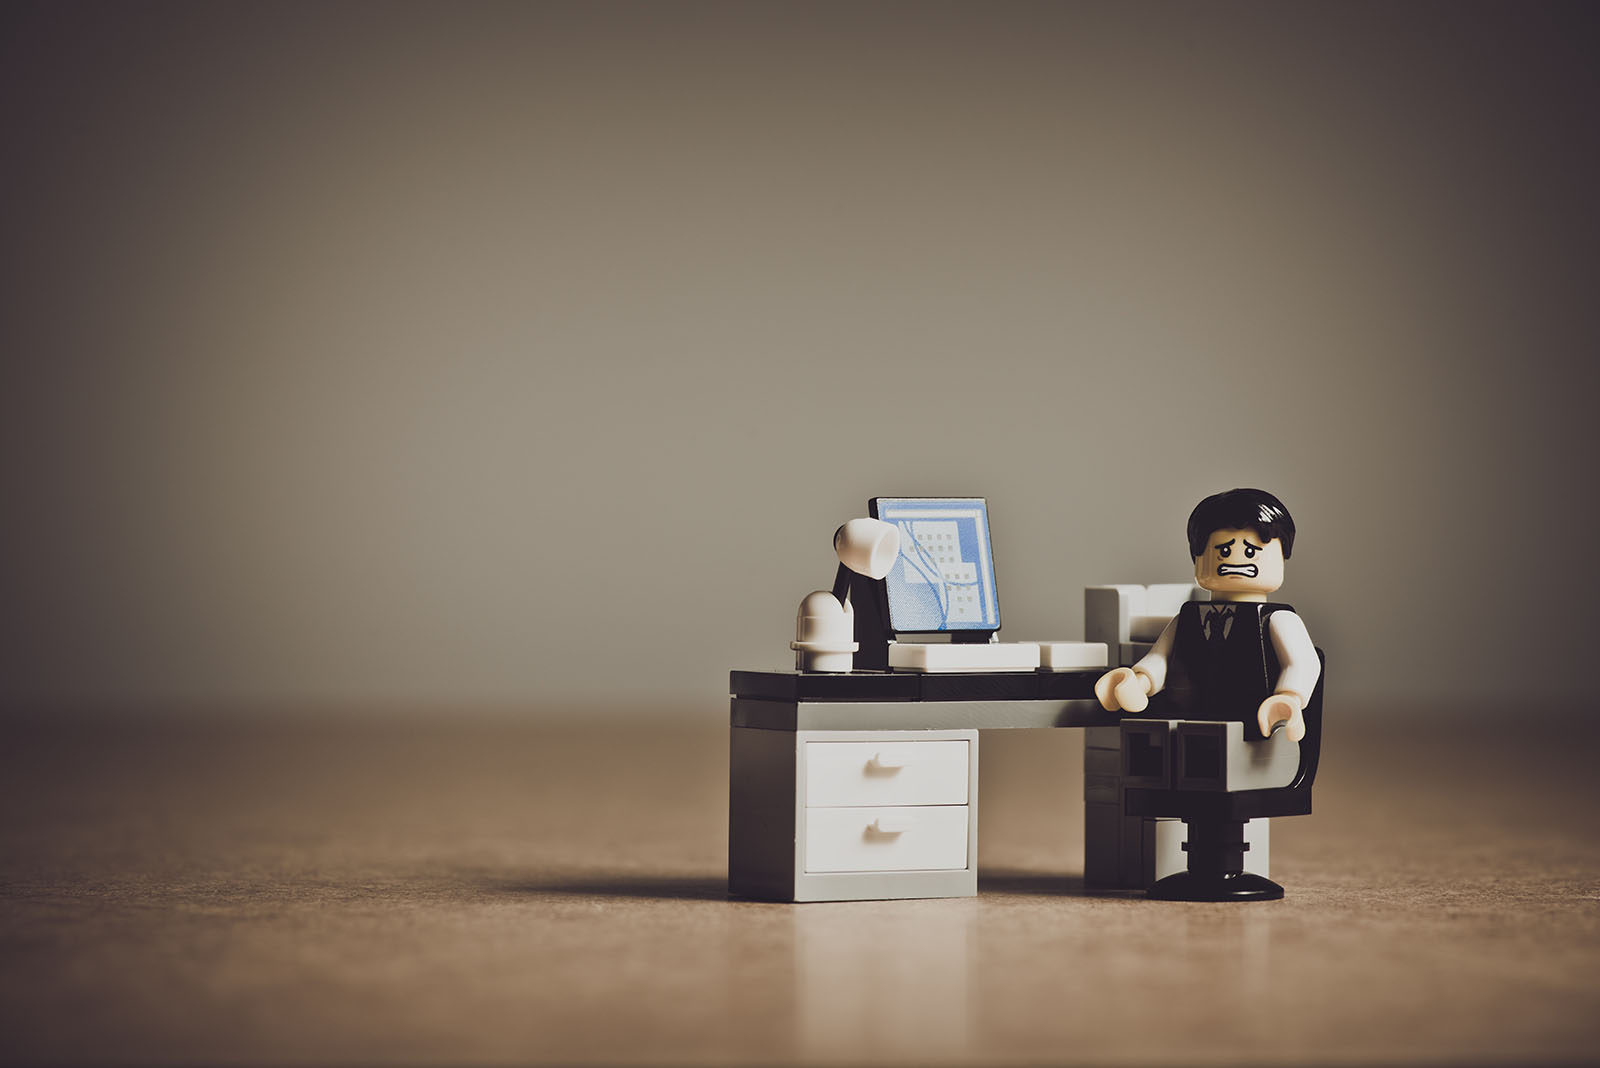 A lego man looking frustrated next to a laptop.